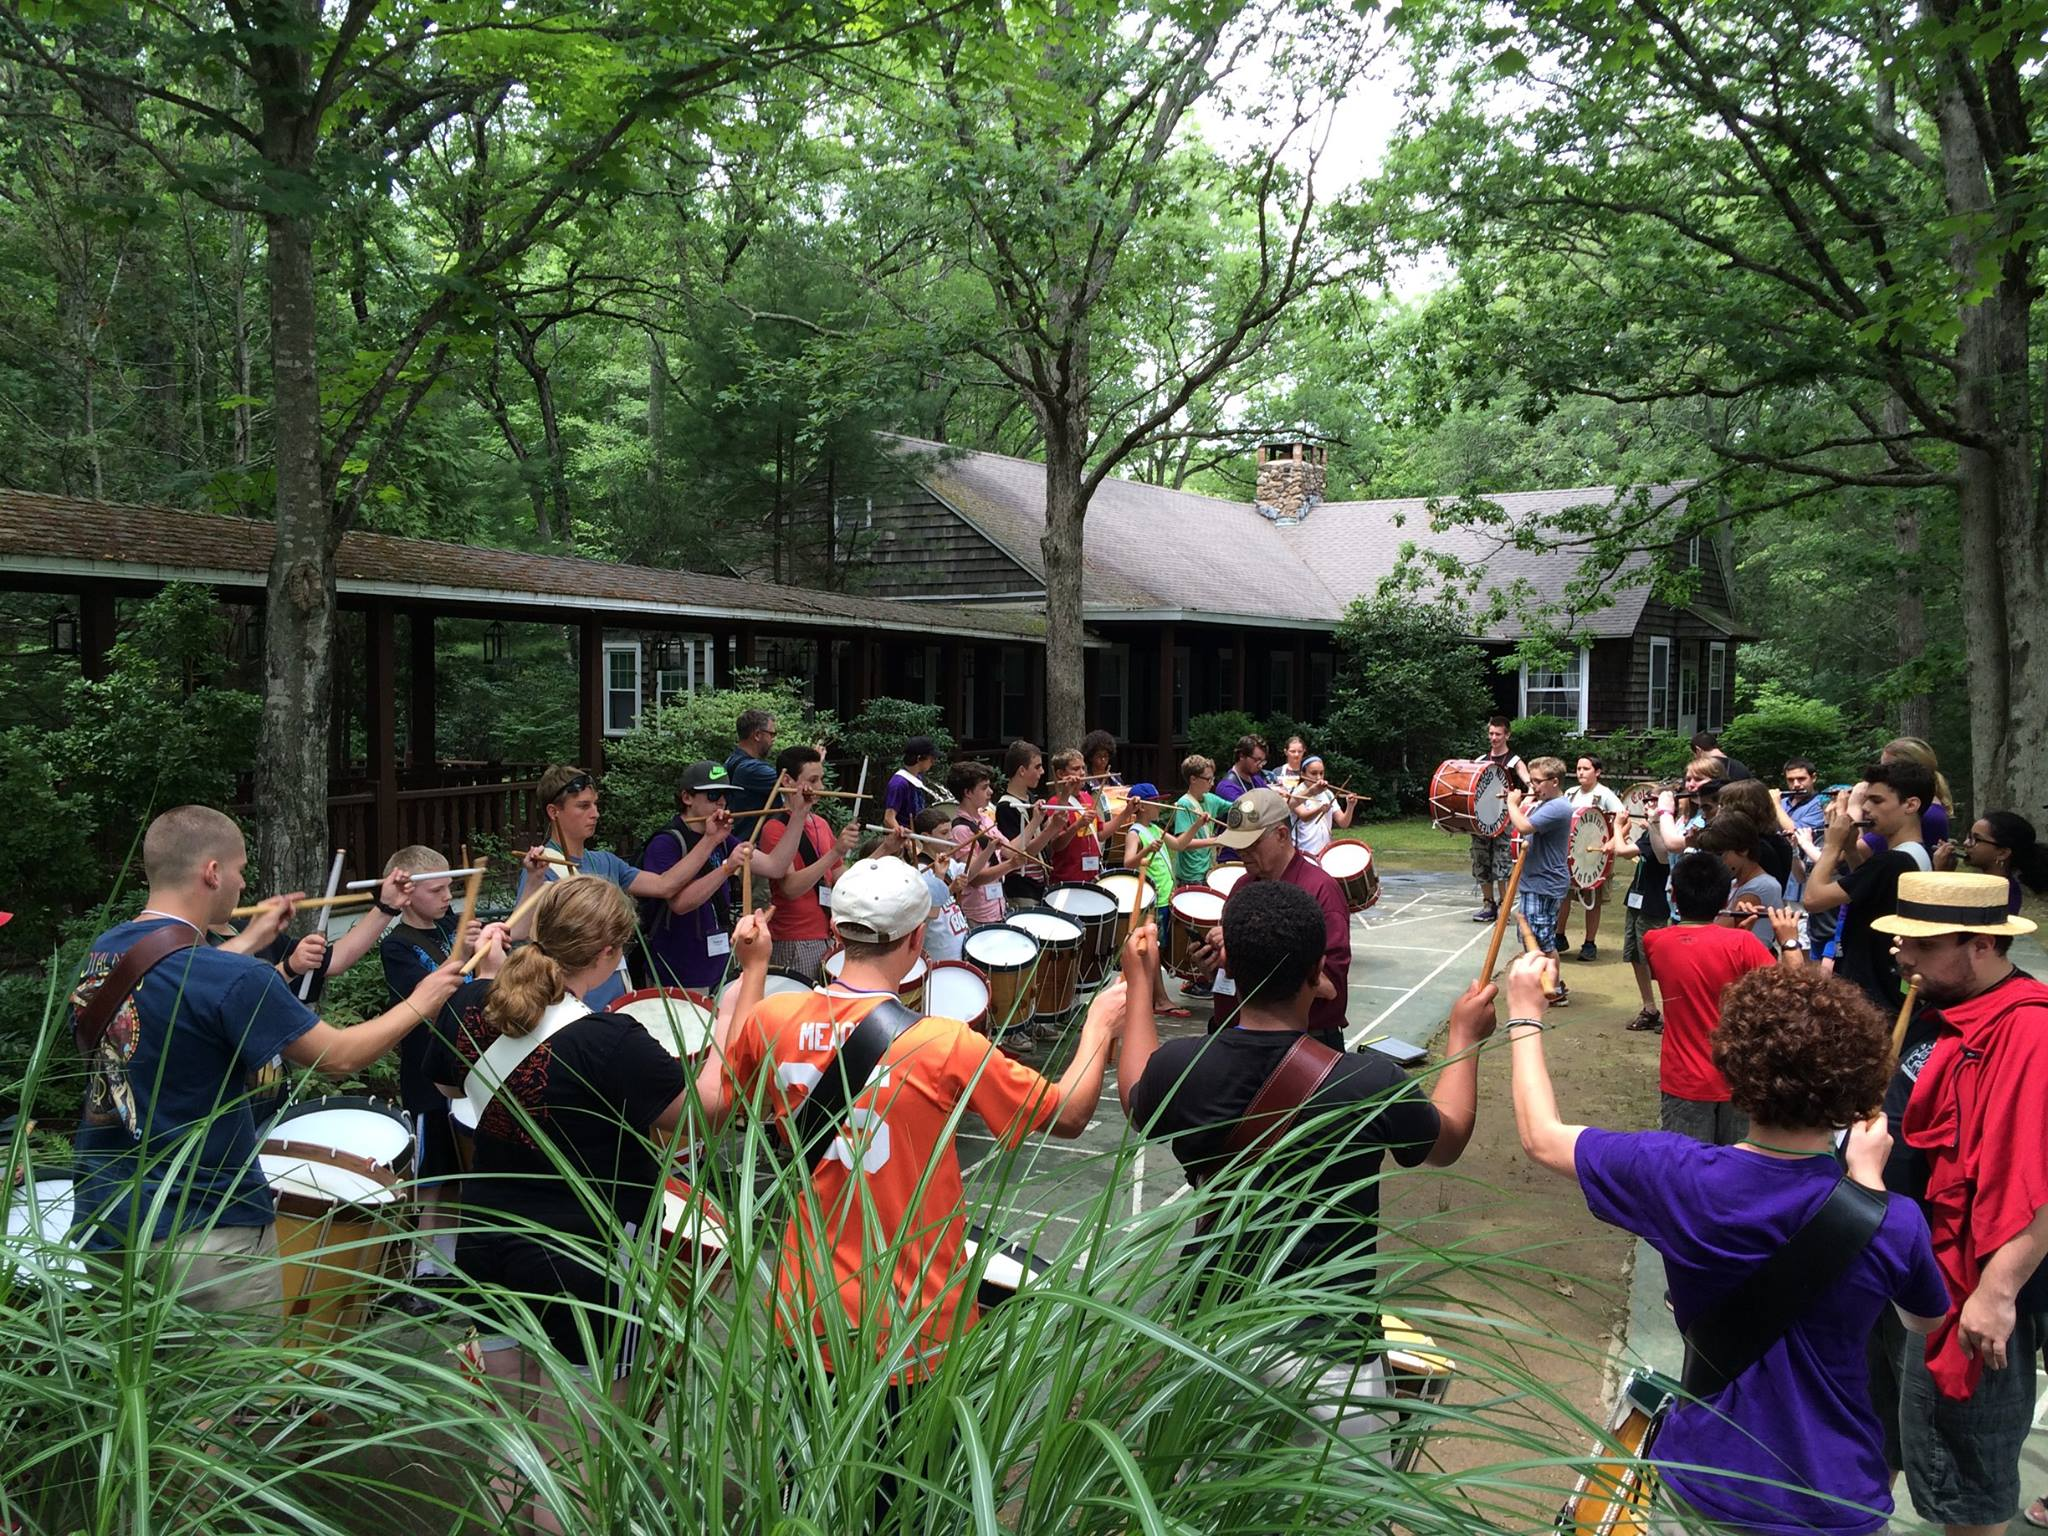 Rehearsing at the Company of Fifers and Drummers Junior Camp